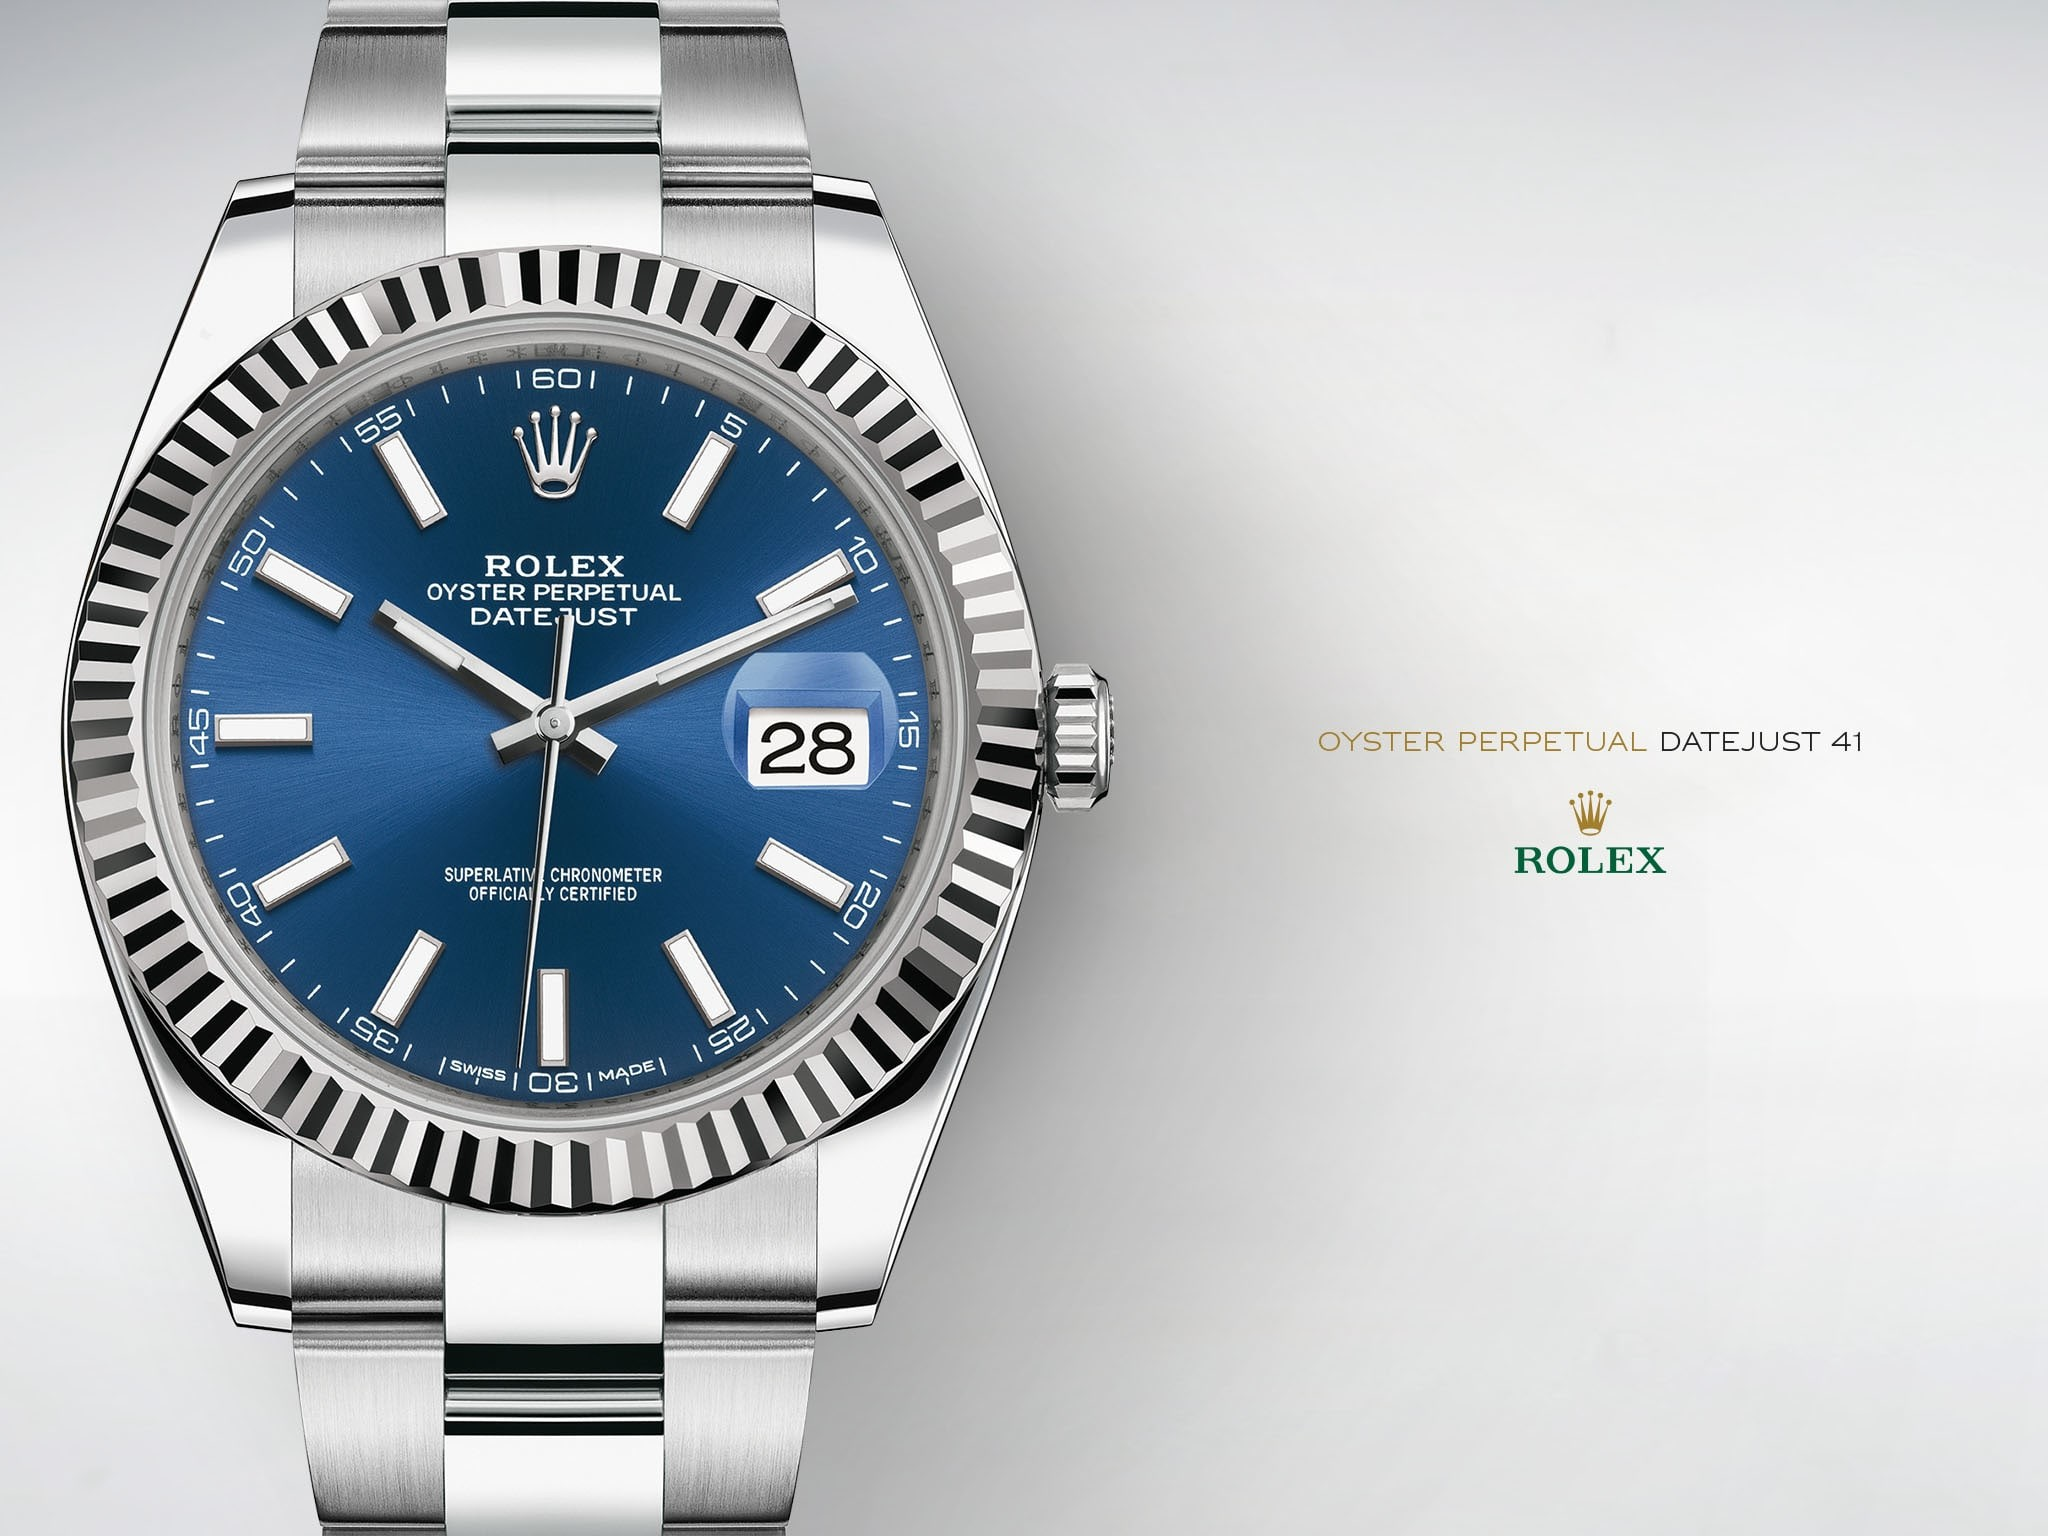 2048x1536 Rolex Watches Wallpapers Rolex Official Downloads